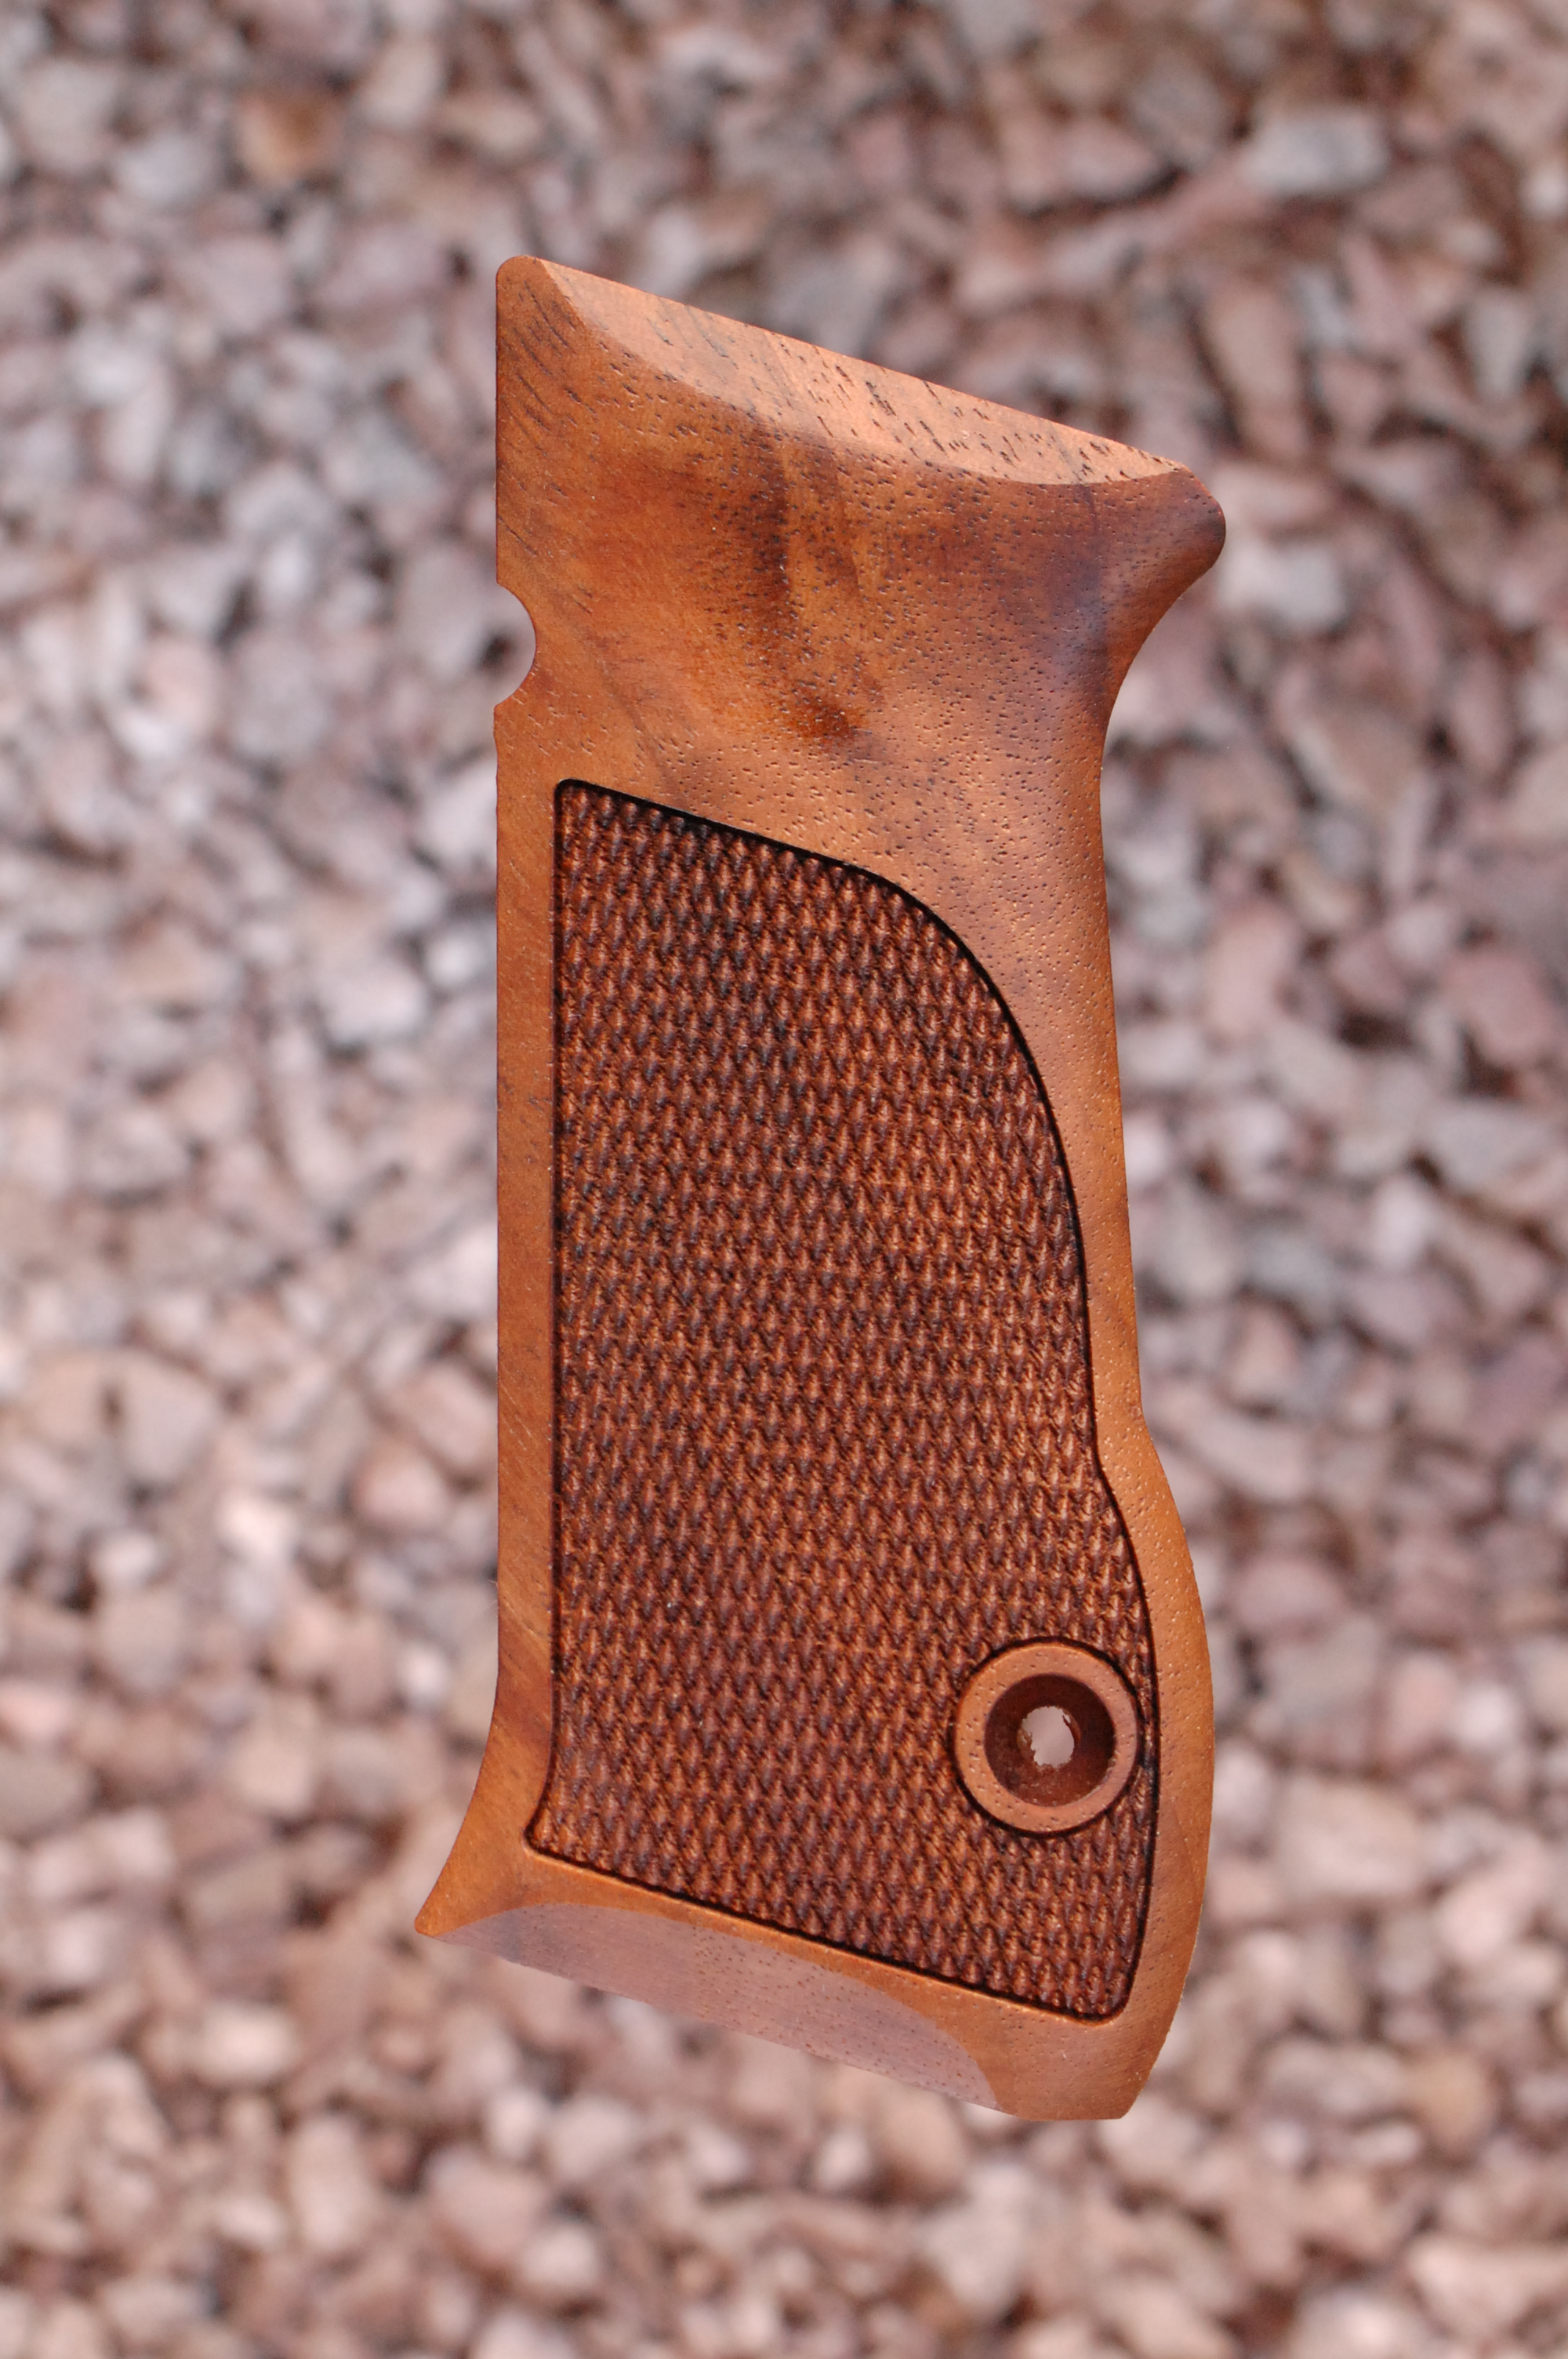 JERICHO 941 GRIPS (checkered) - full size